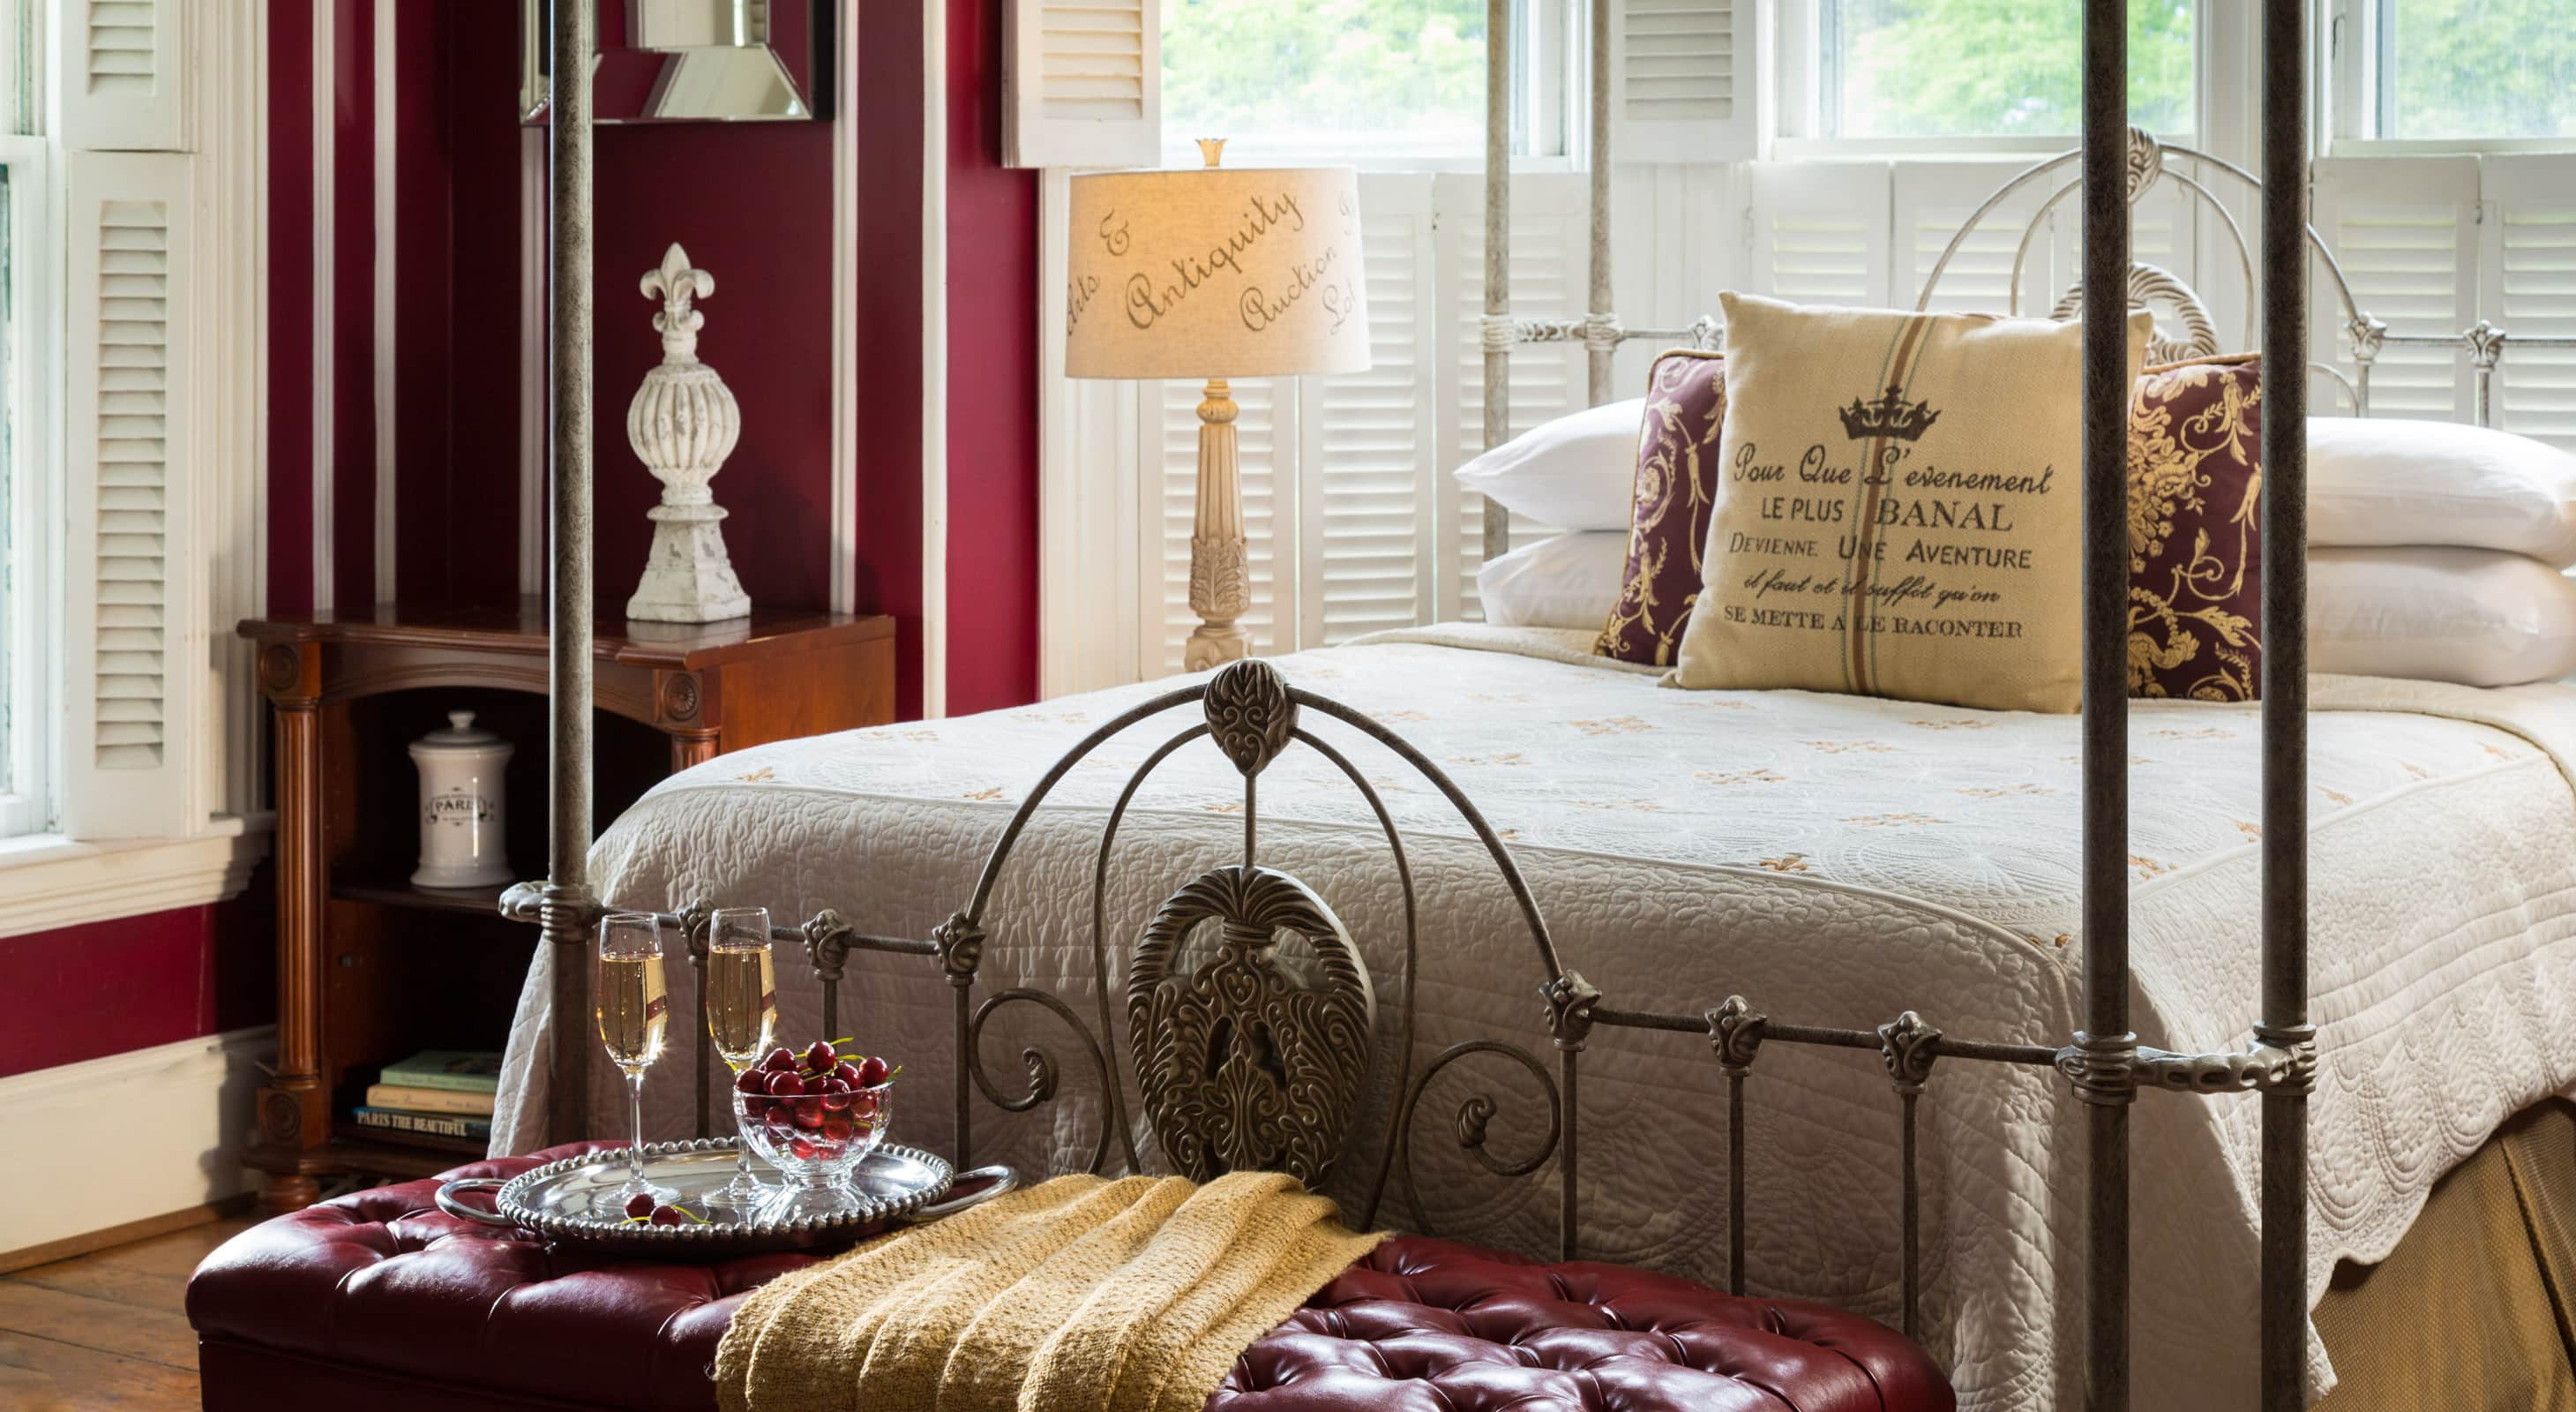 Four-poster queen bed with a reading lamp and a trunk at the foot of the bed